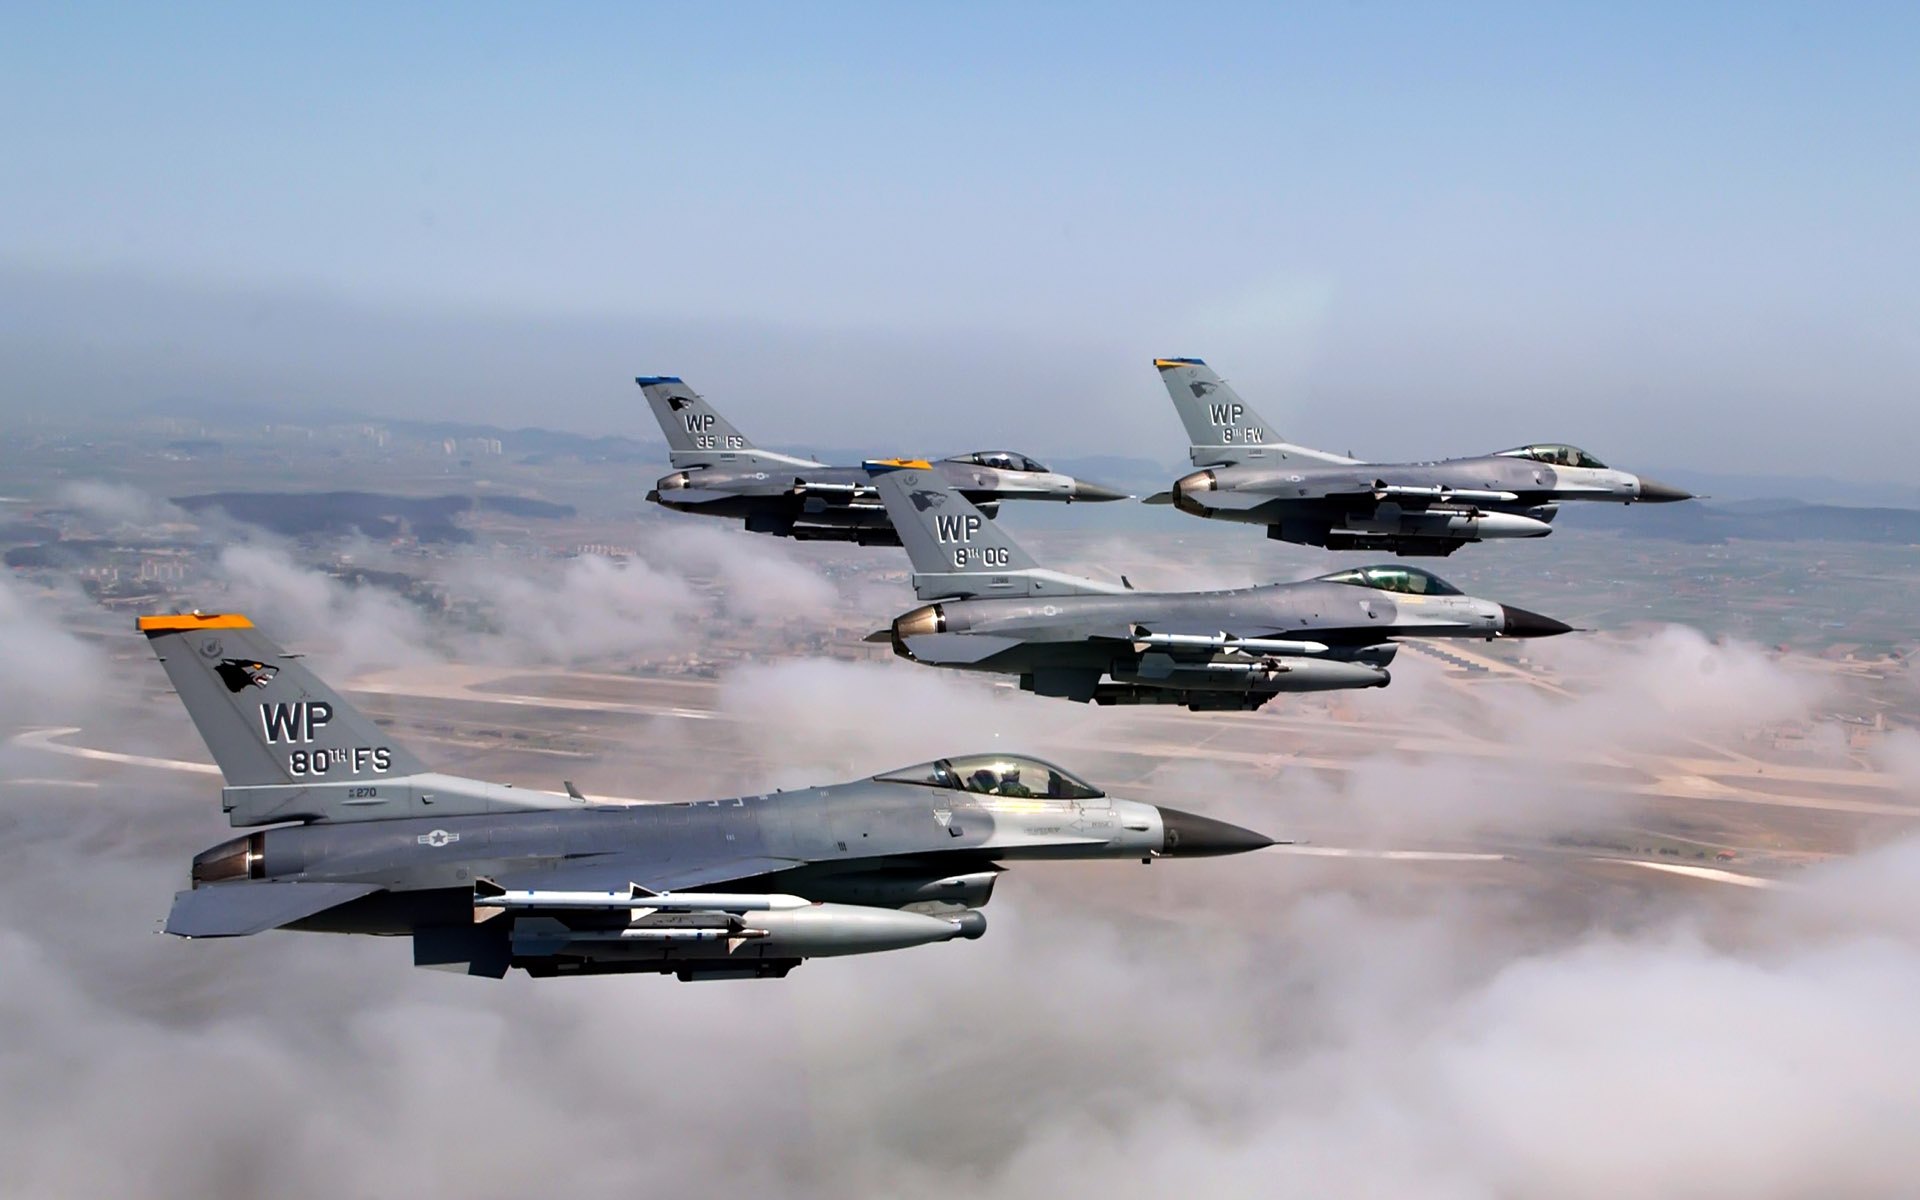 Formation of F 16 Fighting Falcons Wallpapers HD Wallpapers 1920x1200